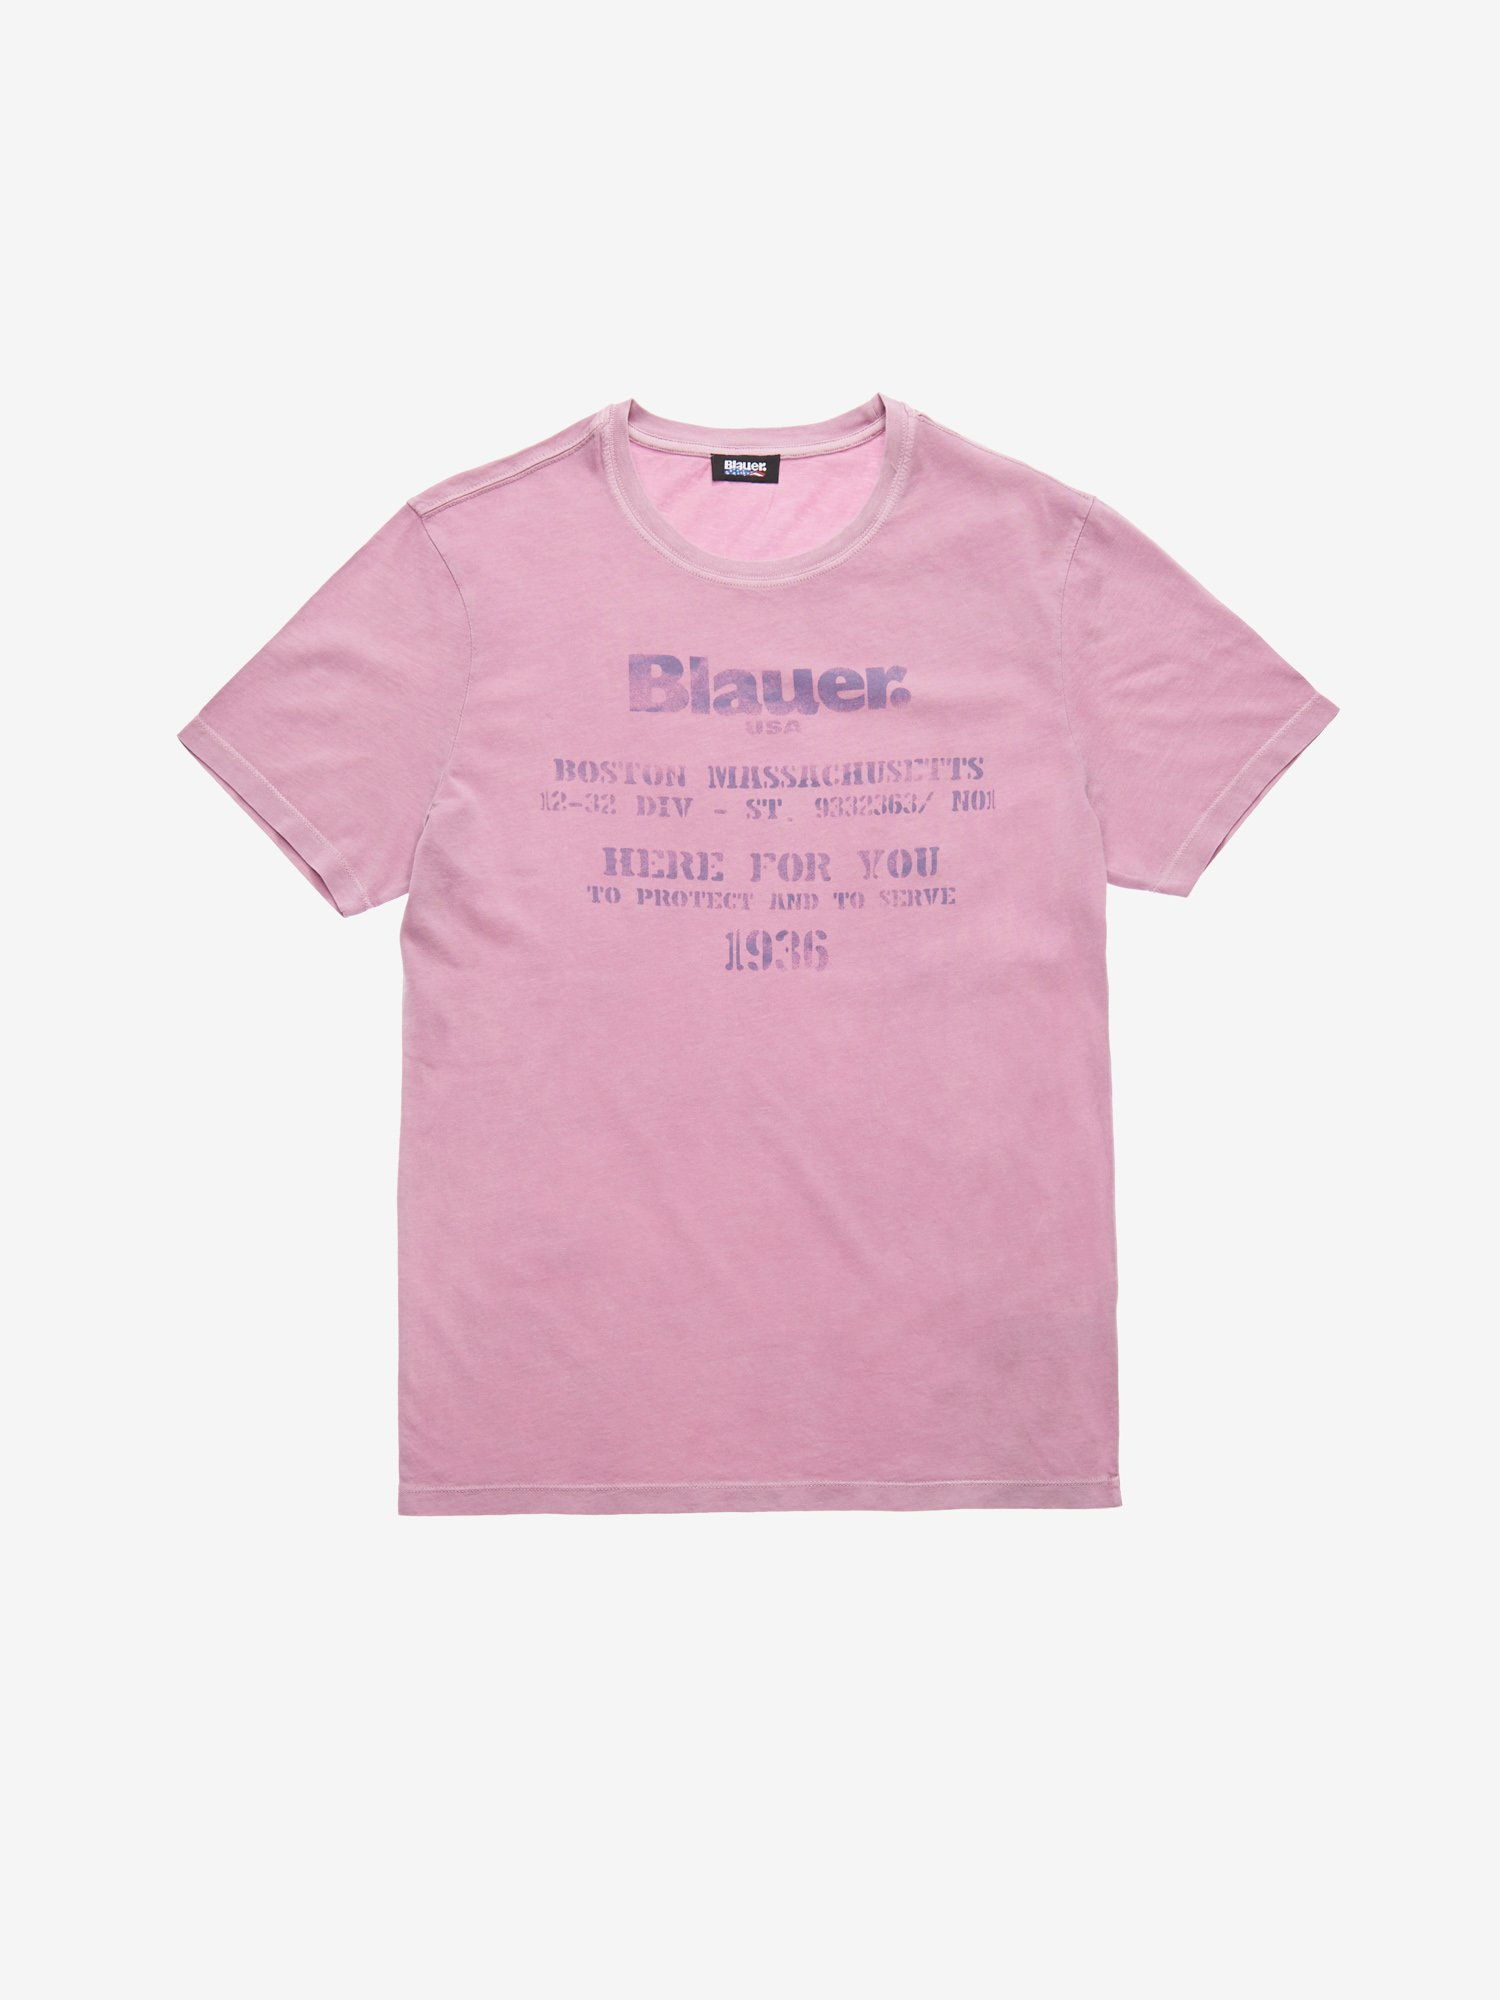 Blauer - PROTECT AND SERVE T-SHIRT - Mauve Pink - Blauer